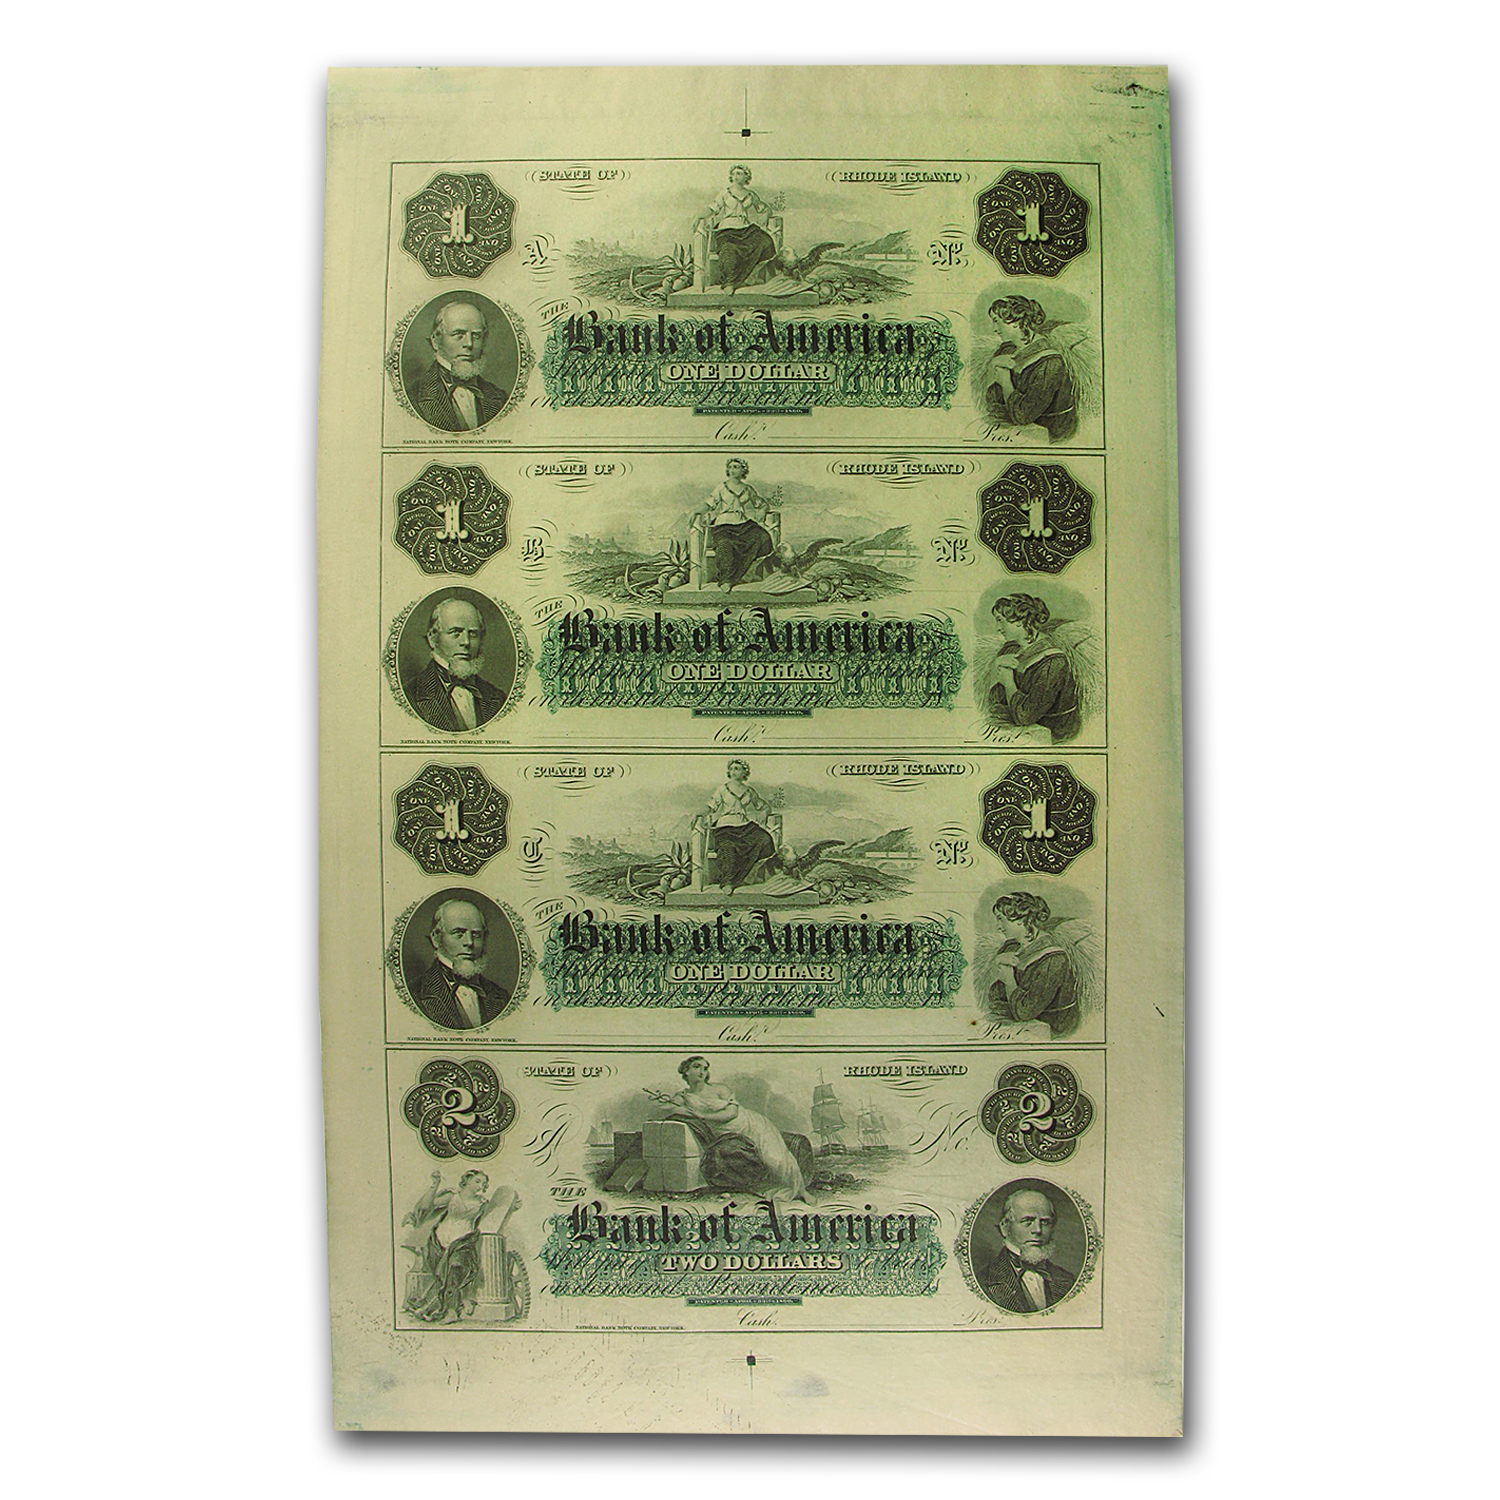 18__ Bank of America, Rhode Island 4-Note Set CU (Uncut Sheet)